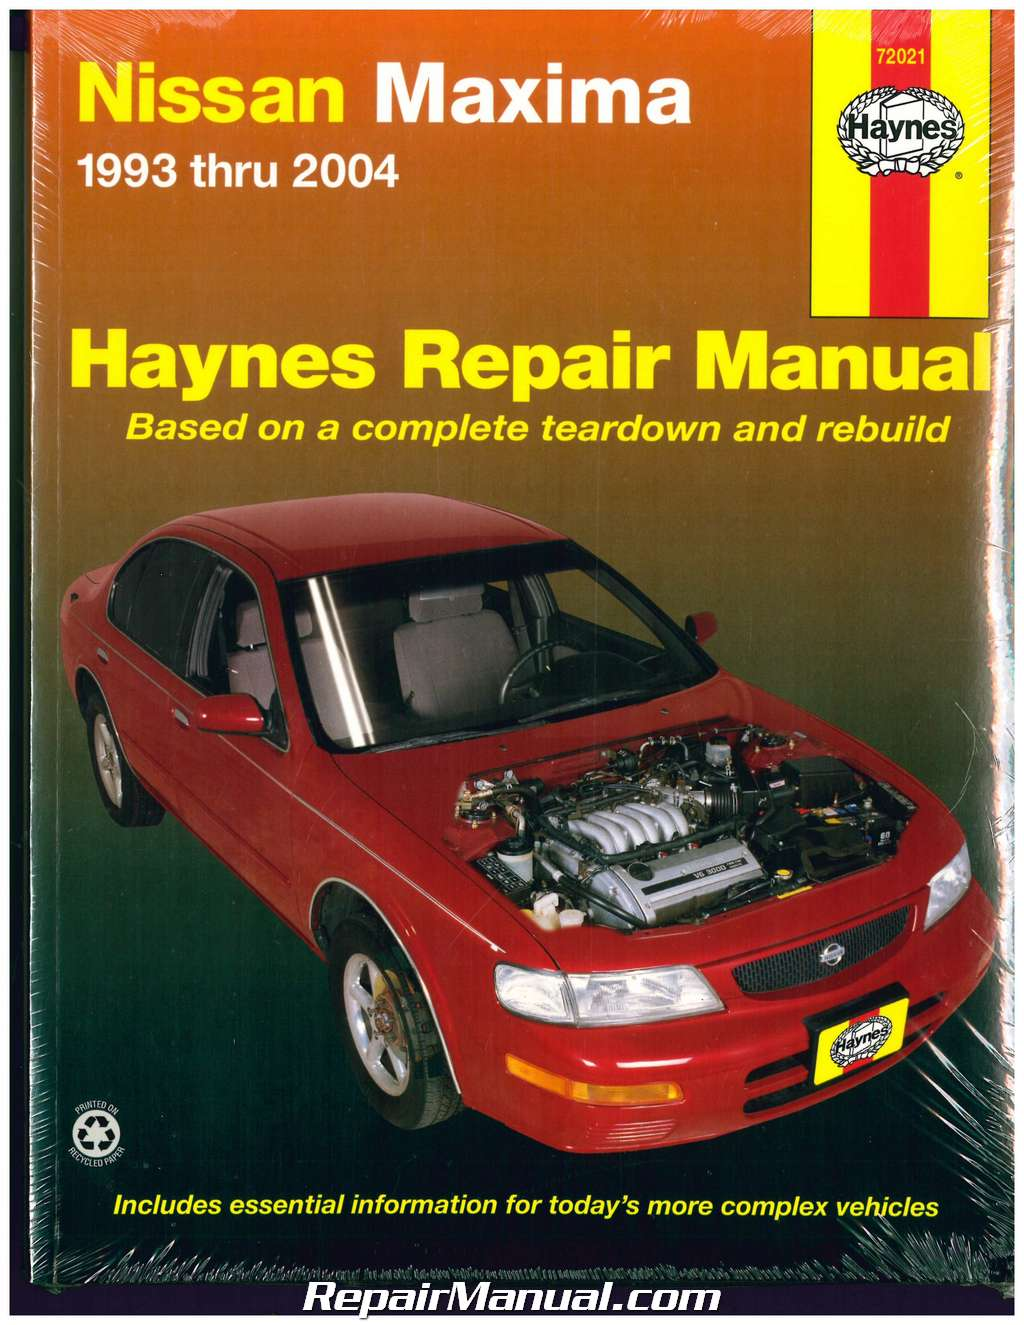 haynes nissan maxima 1993 2004 auto repair manual rh repairmanual com 2004 Nissan Maxima Engine 2004 Nissan Maxima Engine